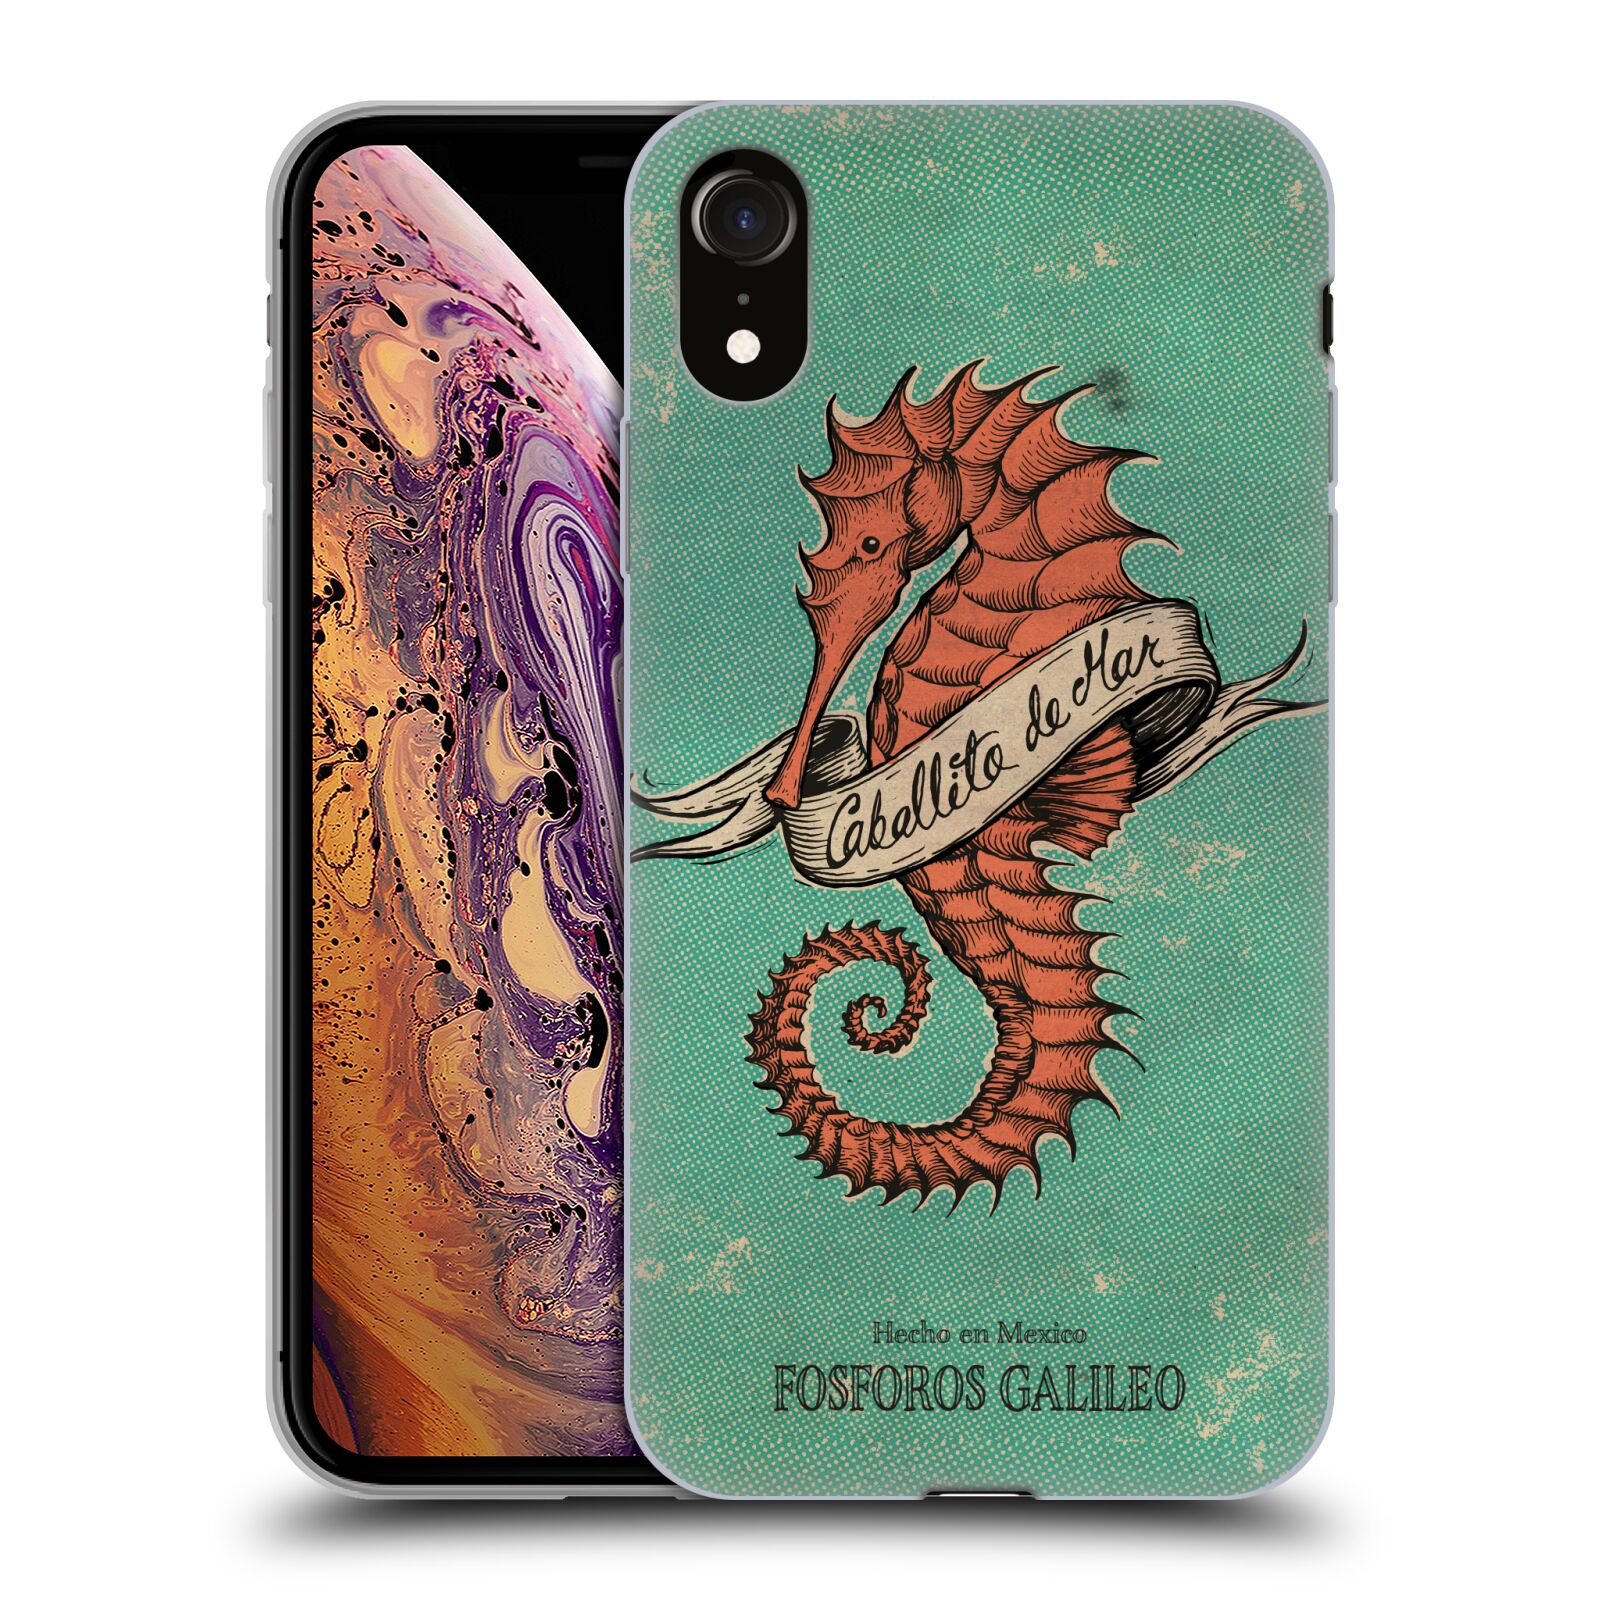 Official Fosforos Galileo Diseños Caballito De Mar Gel Case for Apple iPhone XR